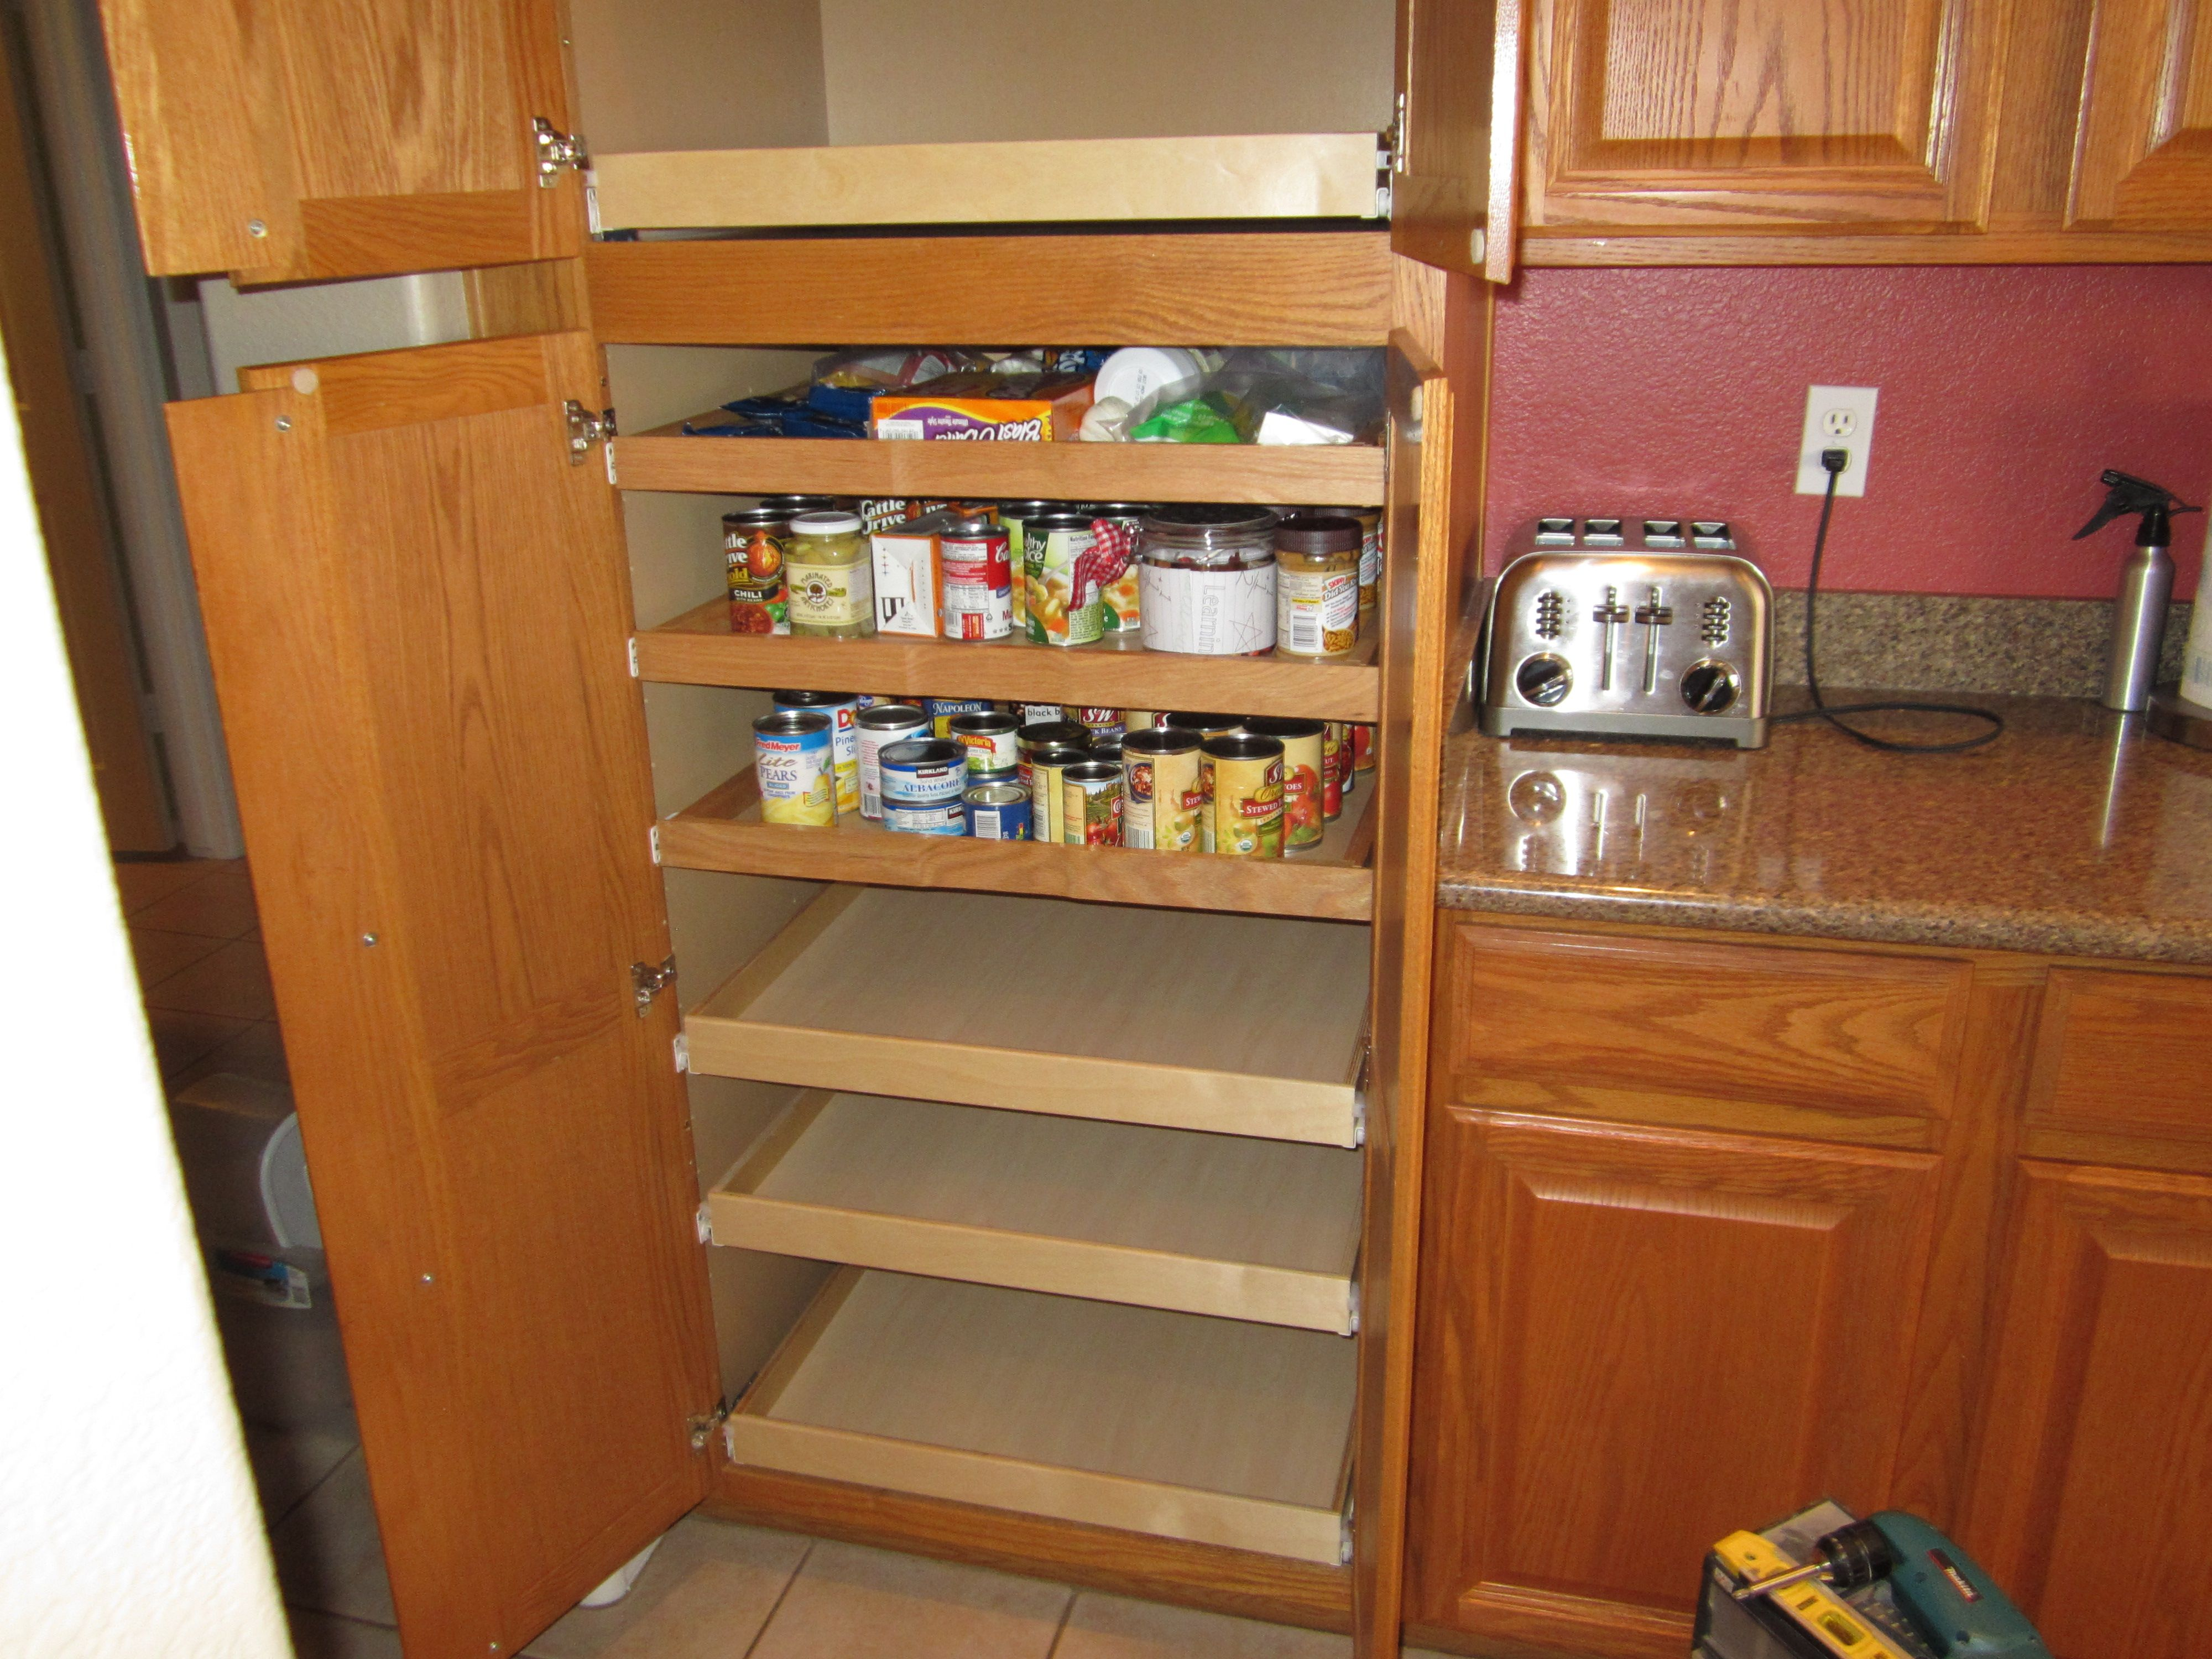 Double Door Pantry Cabinet With Pull Out Shelves Added Pull Out Pantry Shelves Pinterest